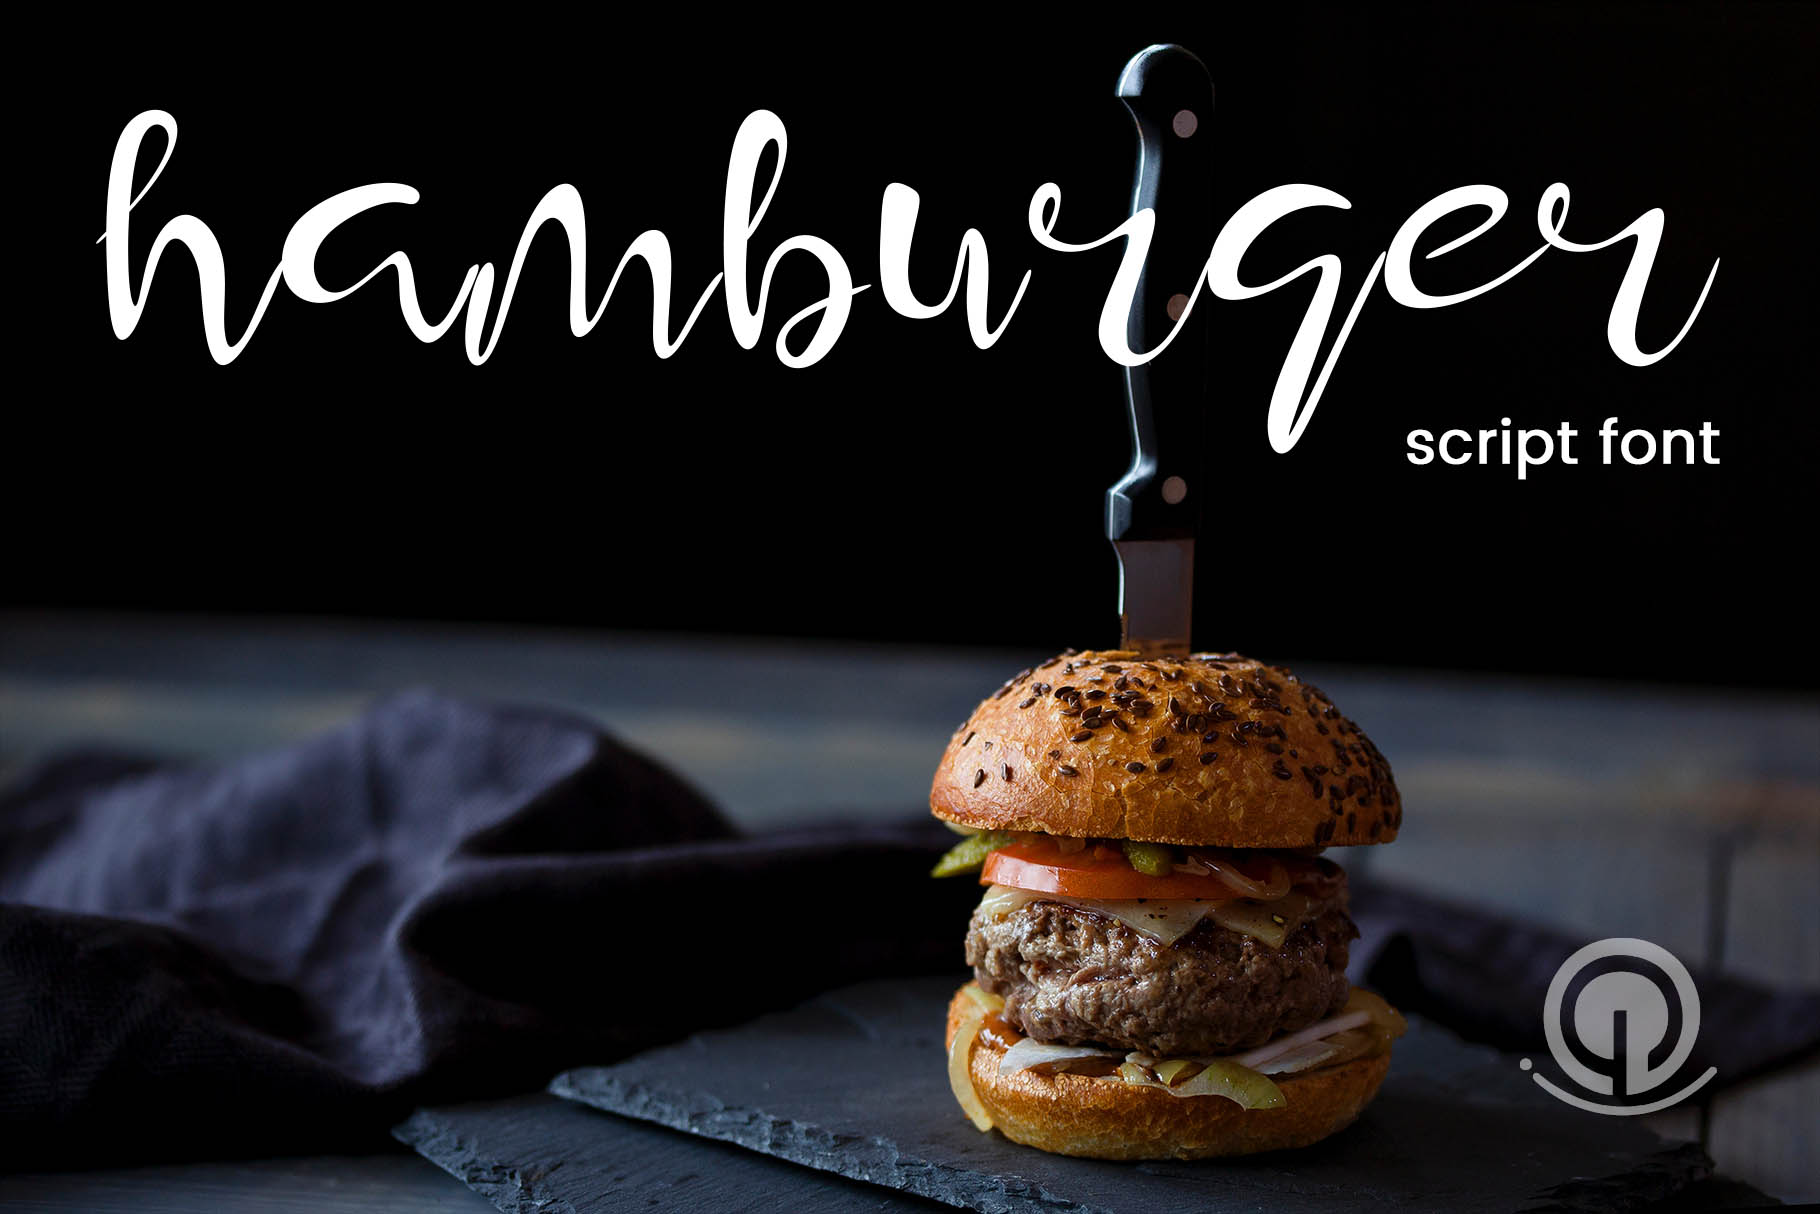 Hamburger Font By gumacreative